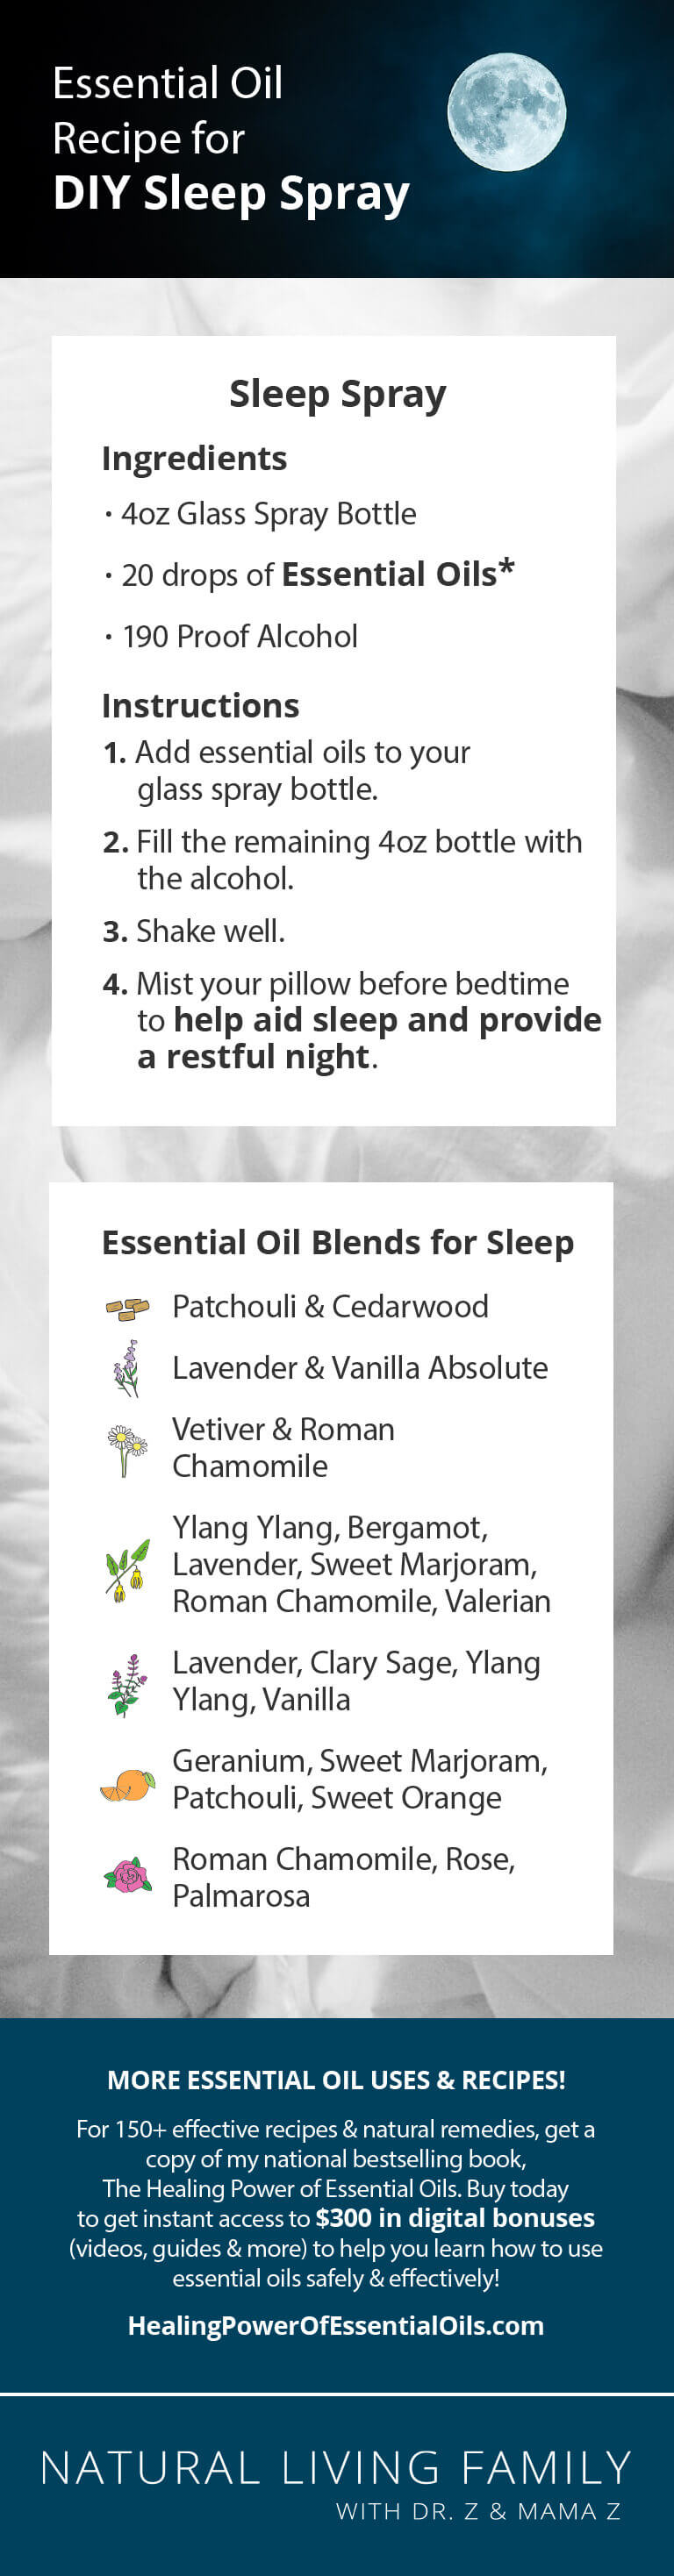 DIY Essential Oils for Sleep Spray Recipe